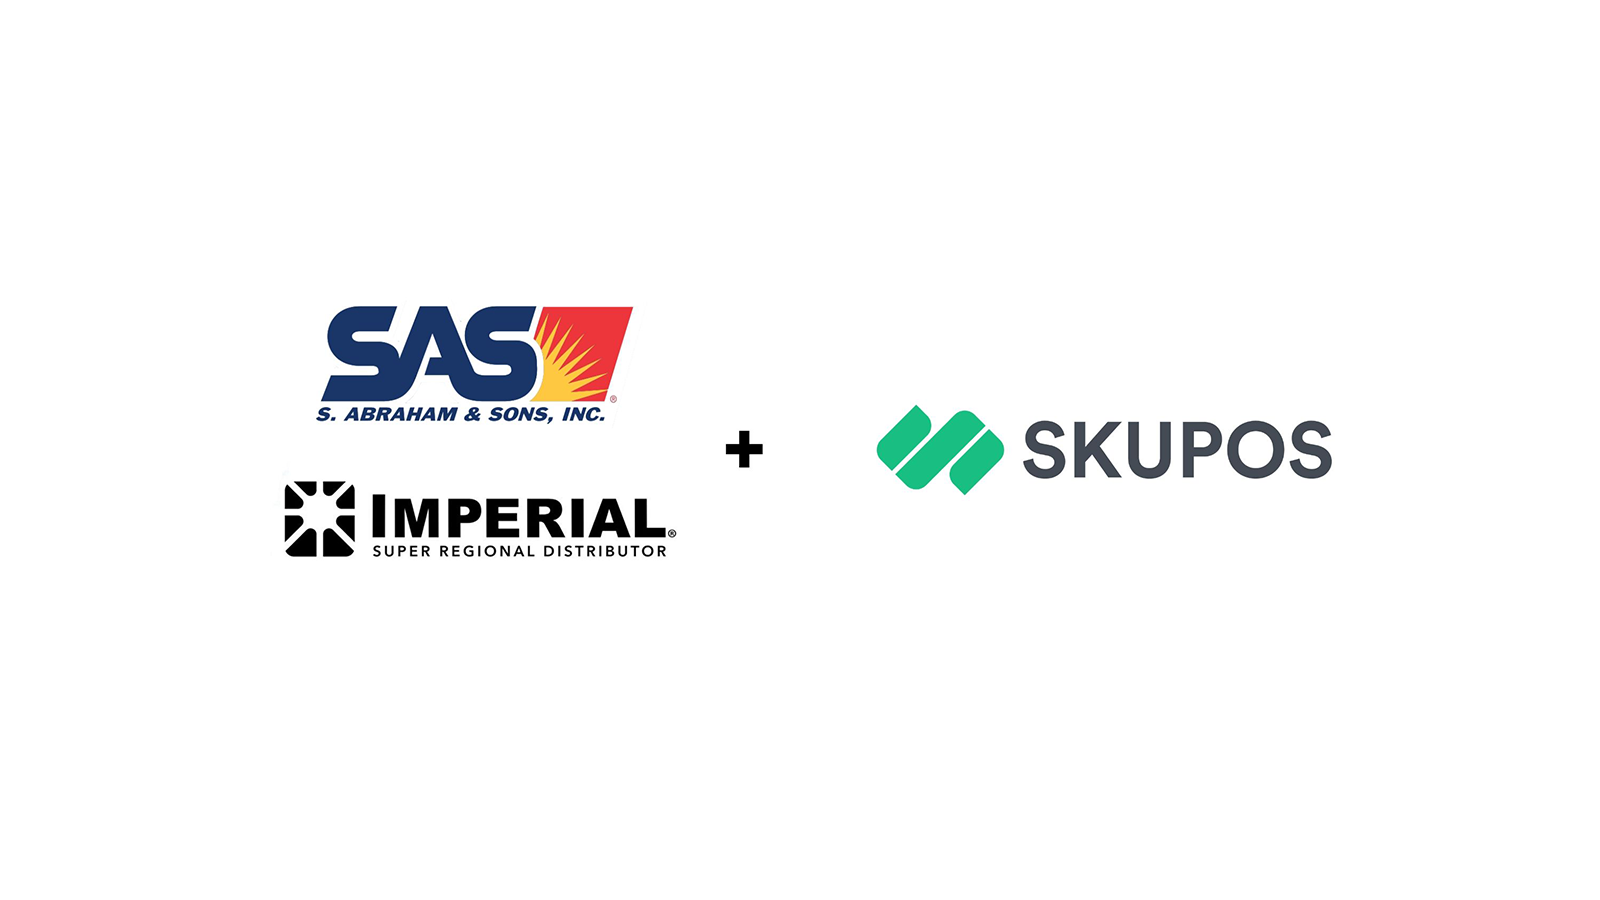 Skupos Partners with Imperial Trading and S. Abraham & Sons To Enhance C-Store Offerings